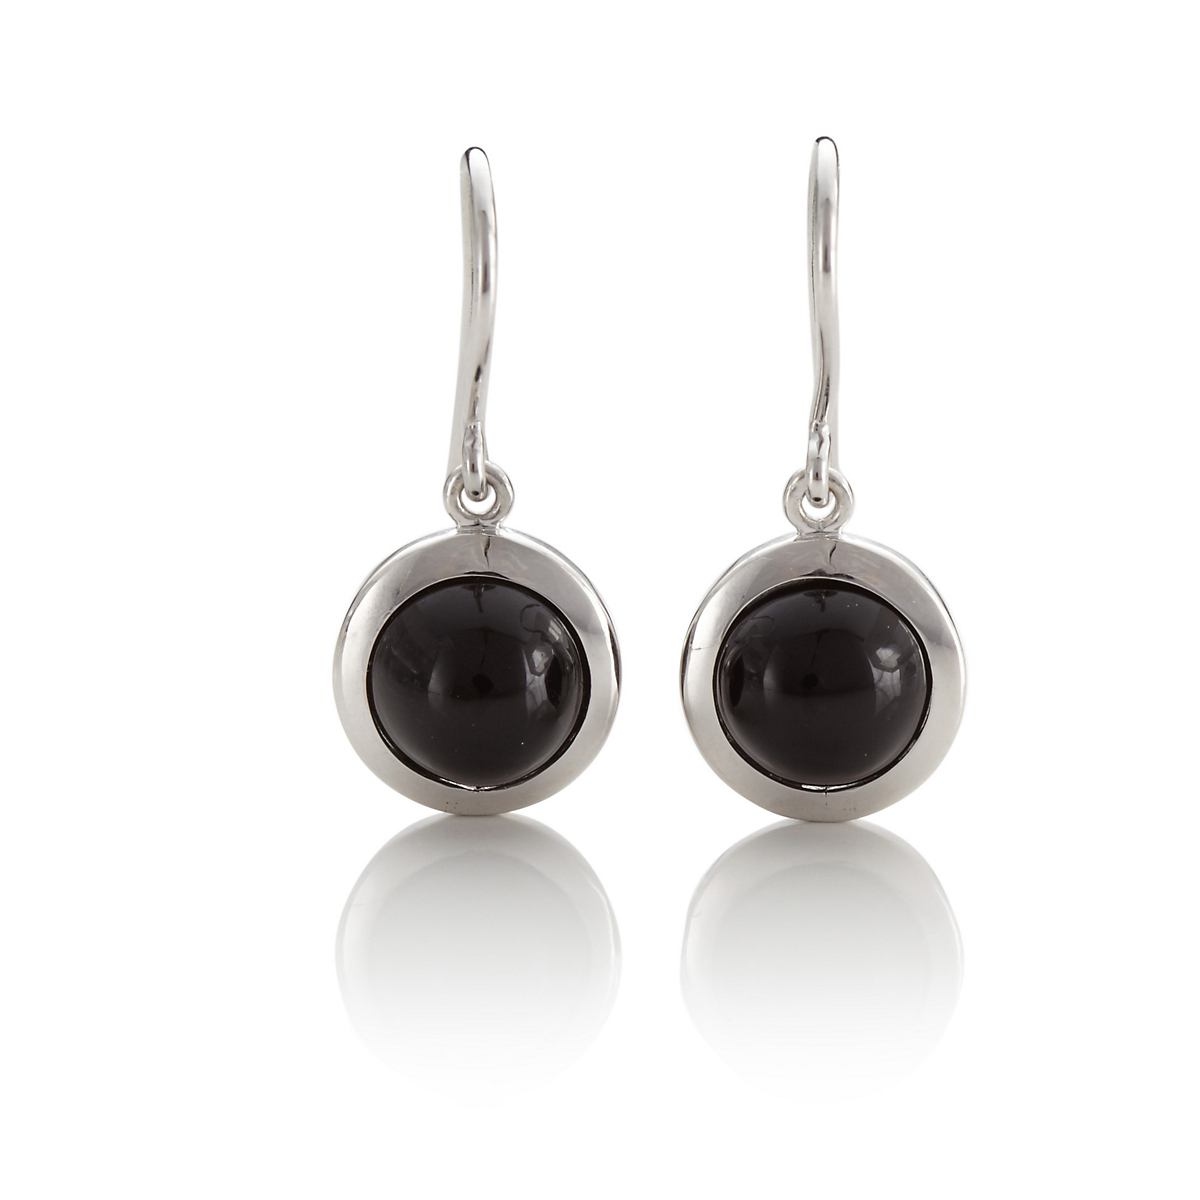 Gump's Black Onyx Round Drop Earrings